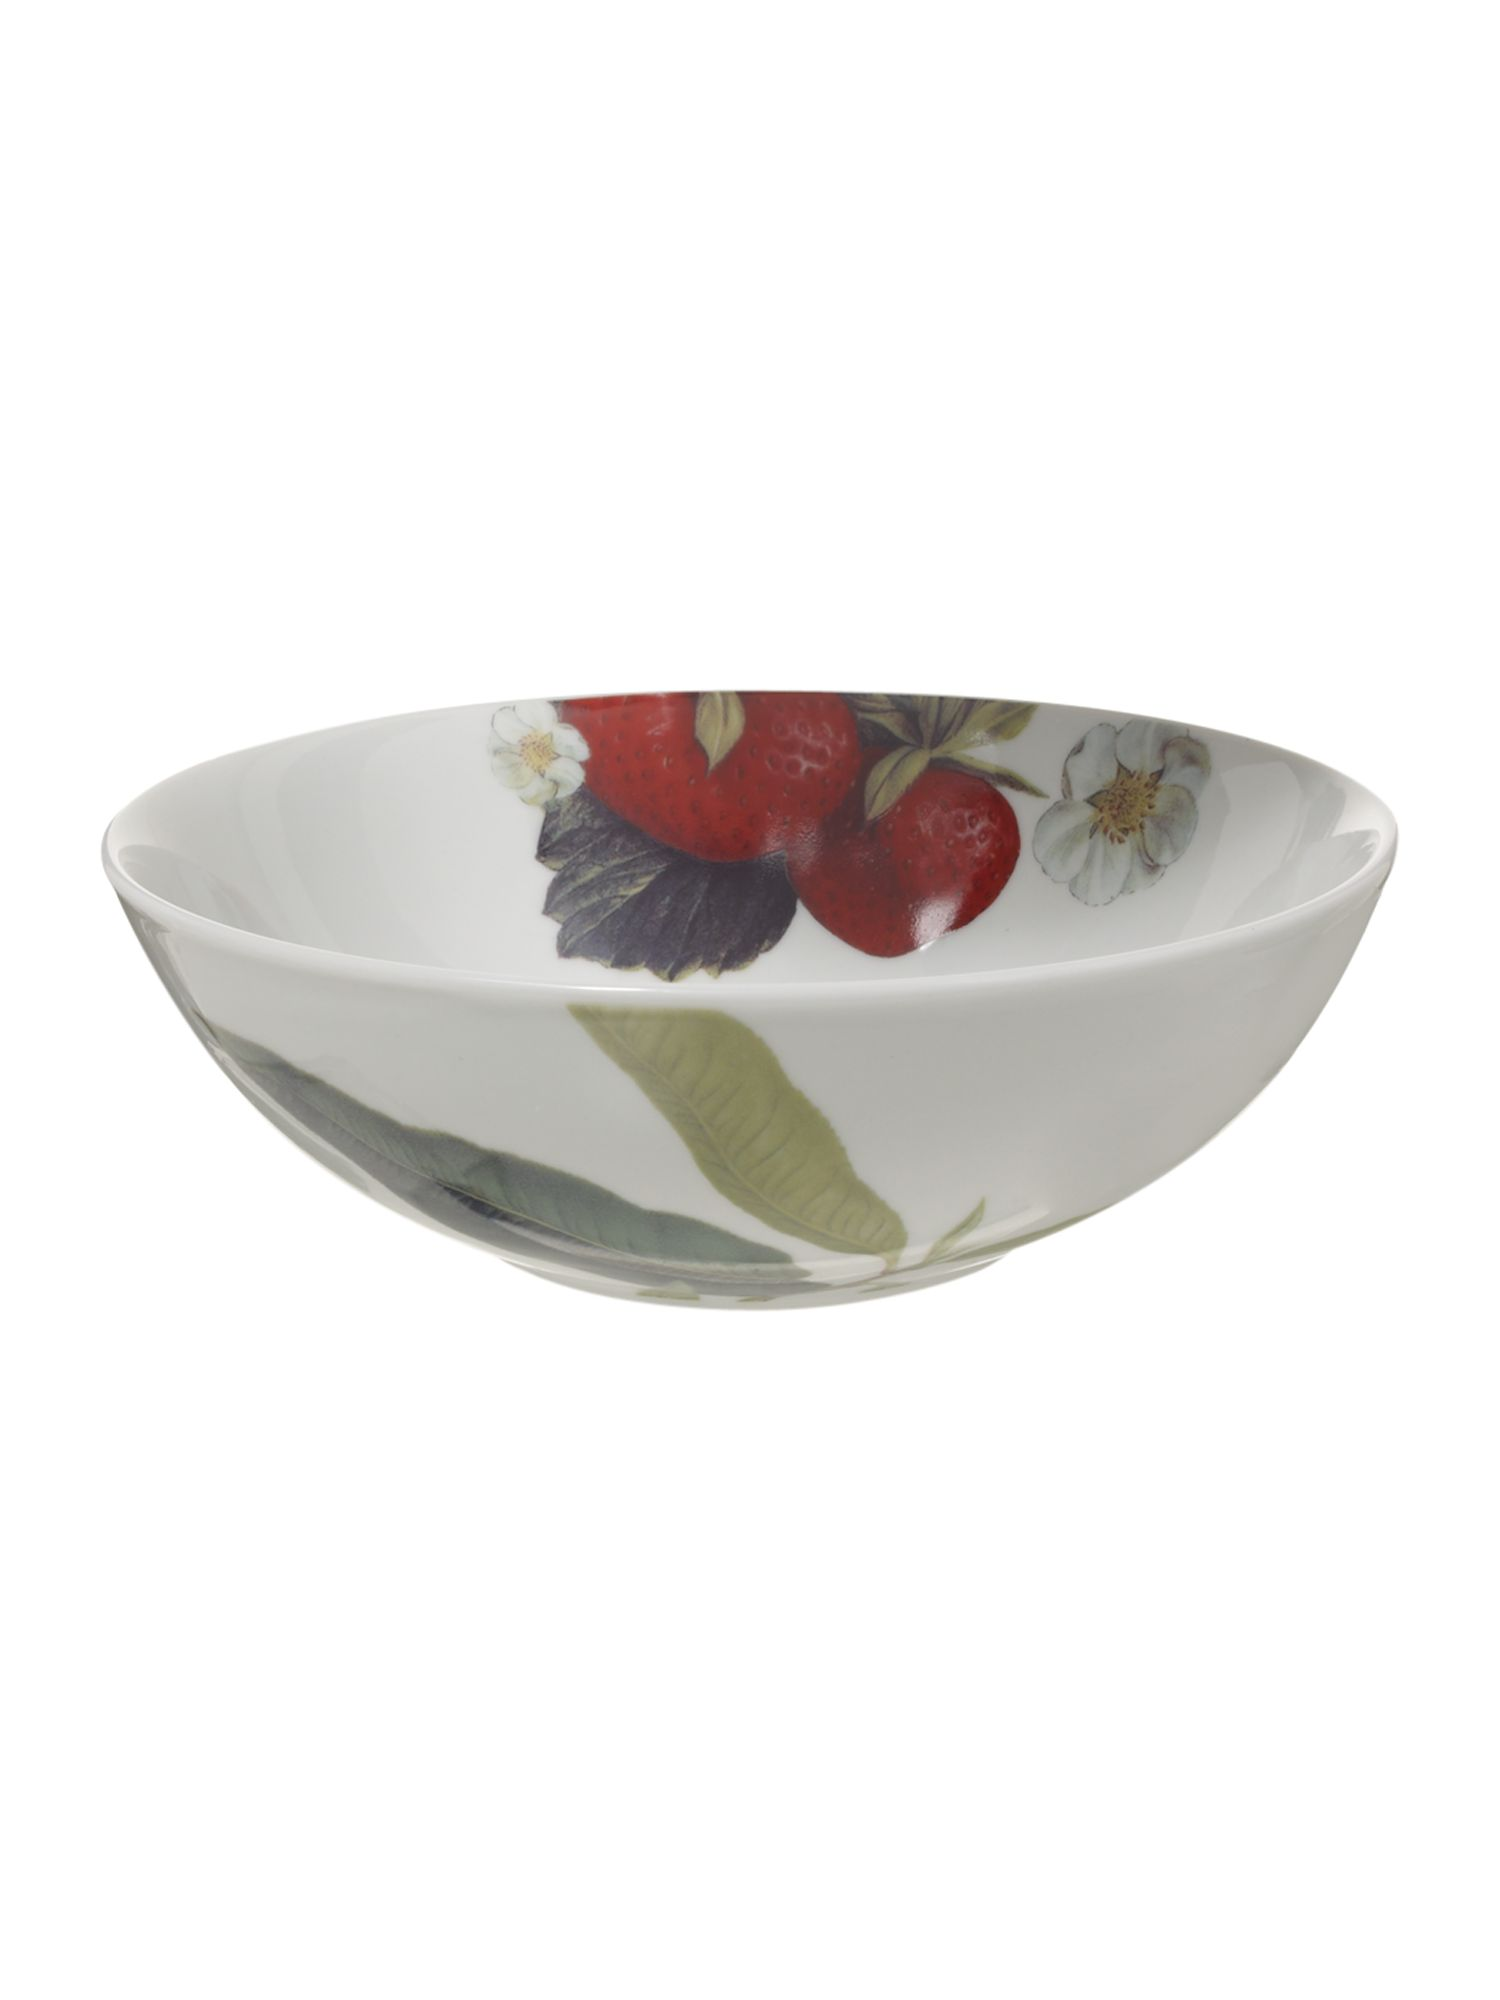 Botanical fruits cereal bowl